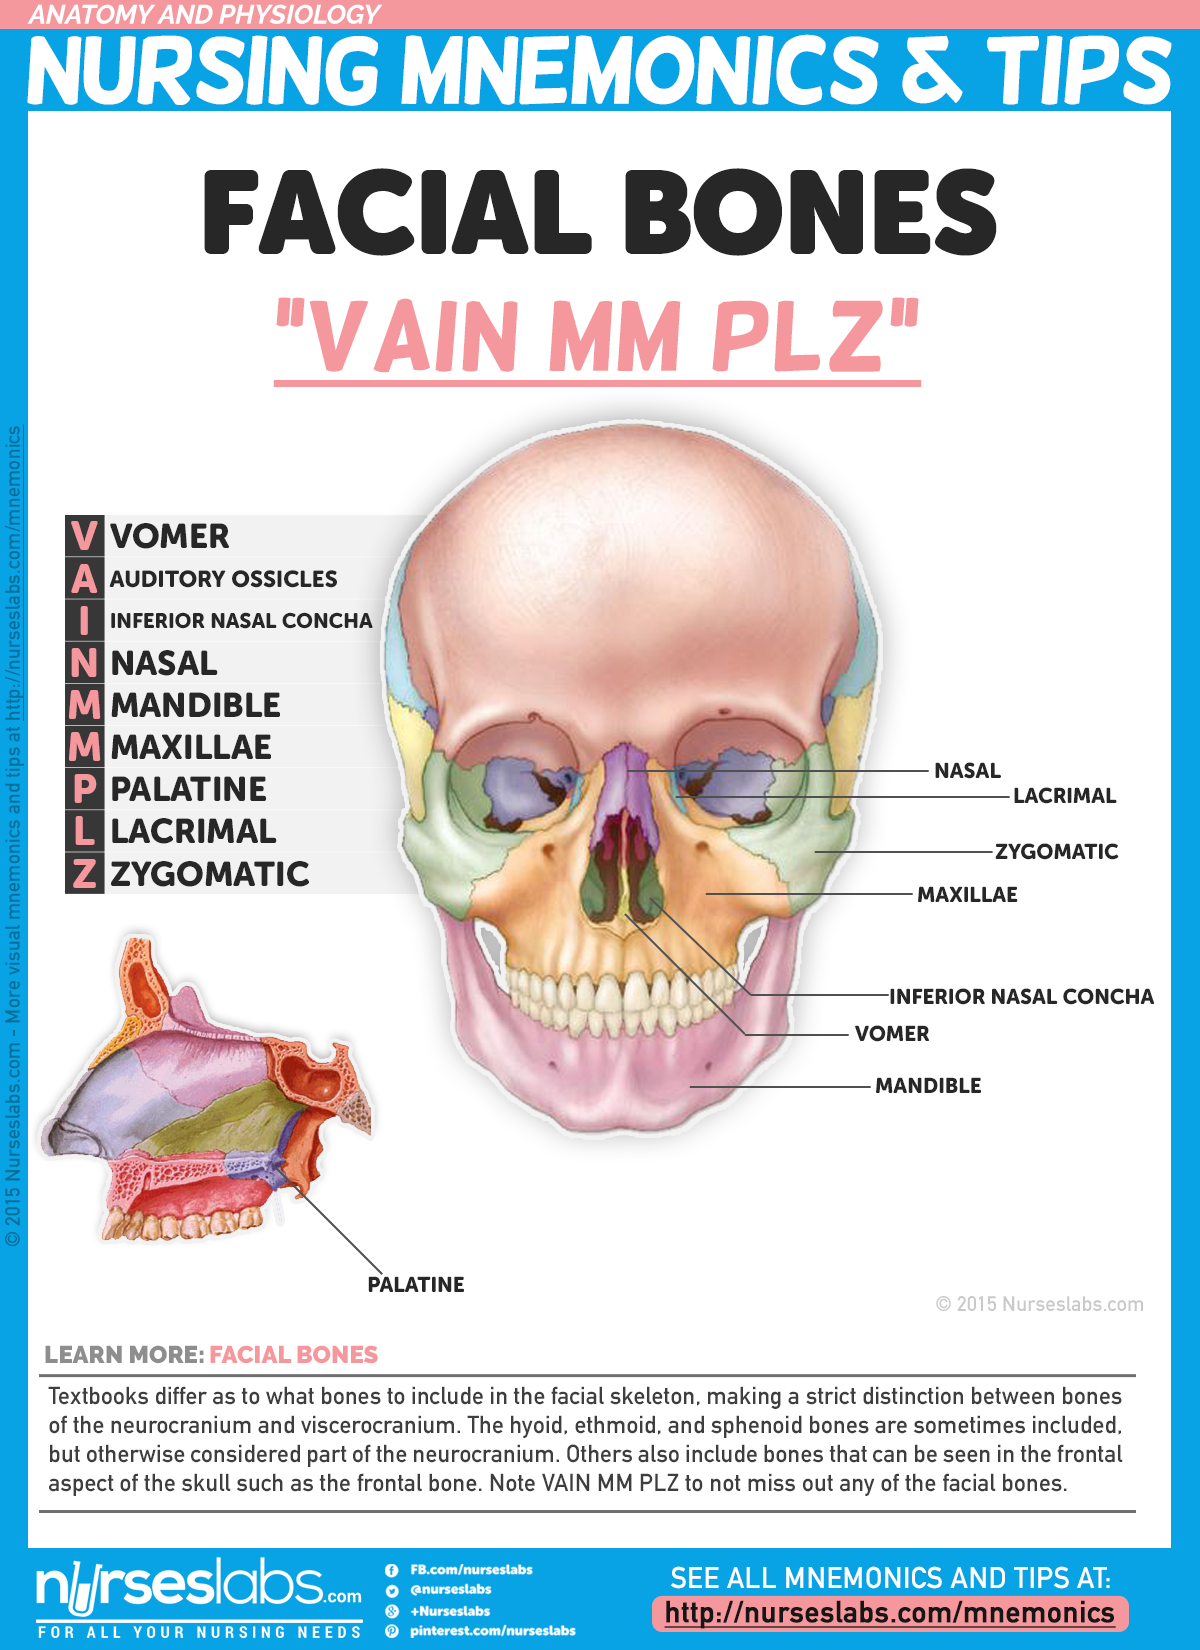 Anatomy and Physiology Nursing Mnemonics & Tips | Facial bones ...